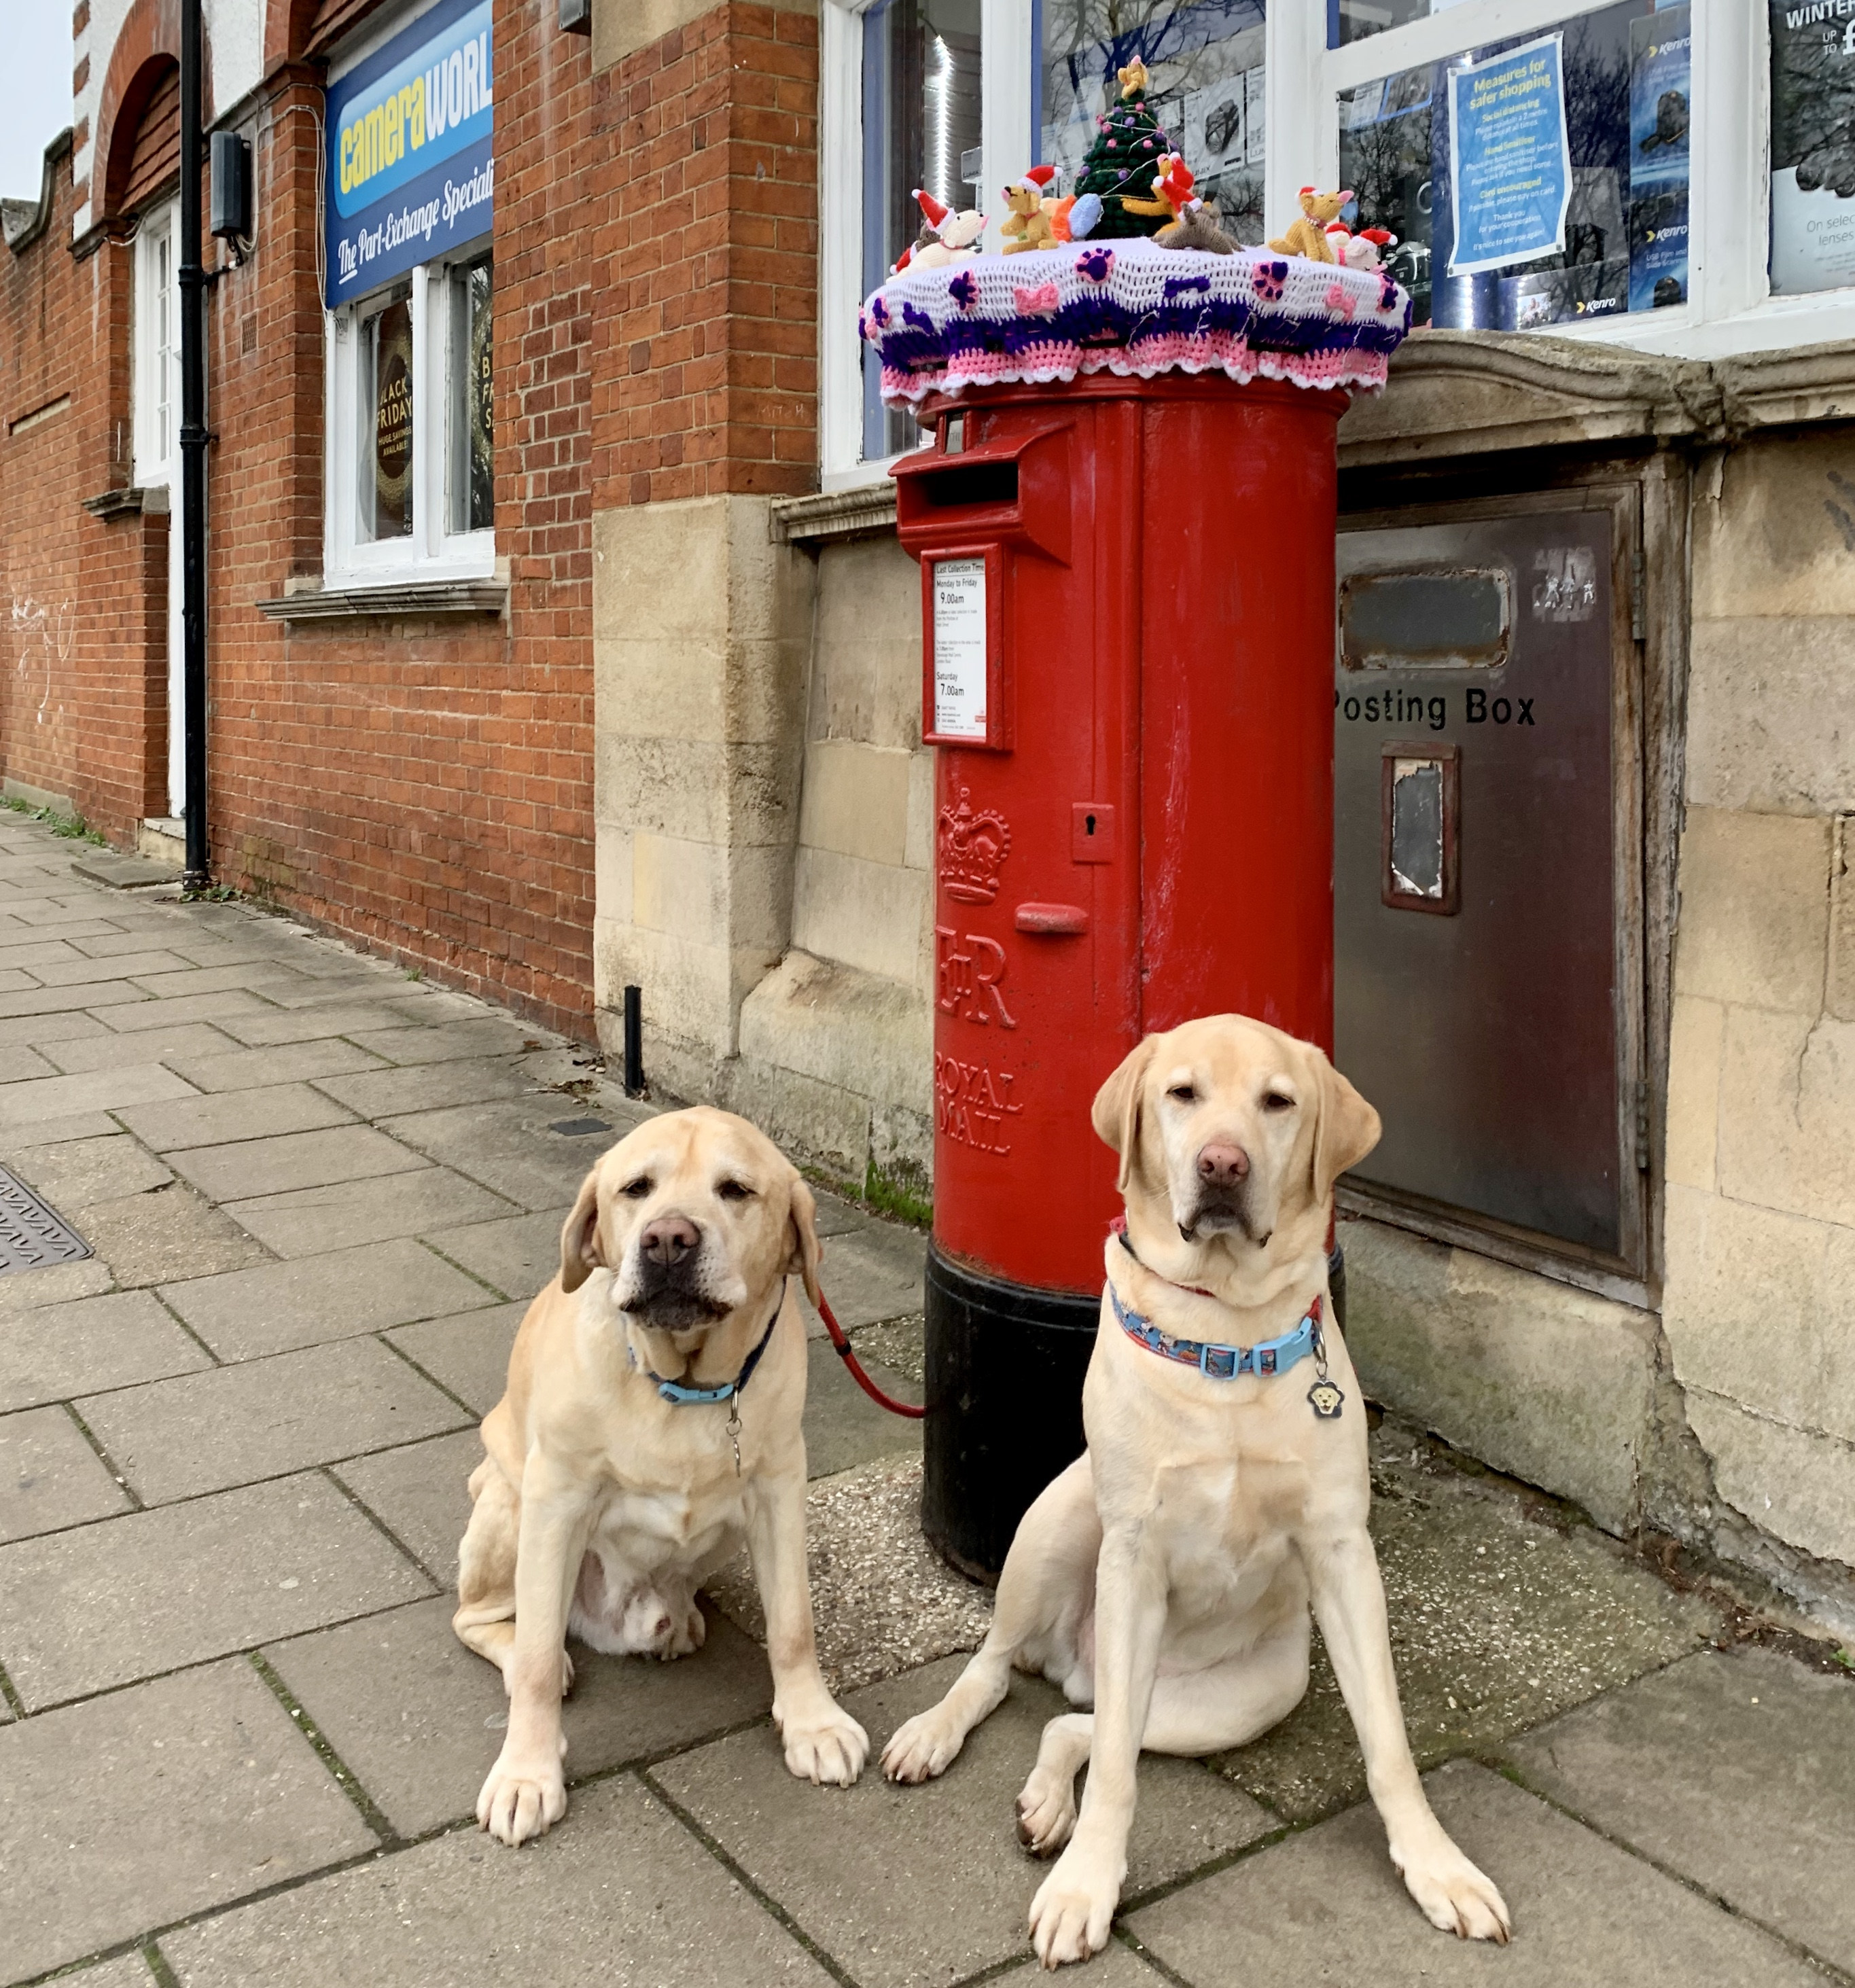 Above: Big Ben and Orberry, two of The Ponks helping to promote a postbox topper that was made by Jo's talented Auntie to bring some cheer to Stevenage High Street and raise funds for the Mayor's charities.